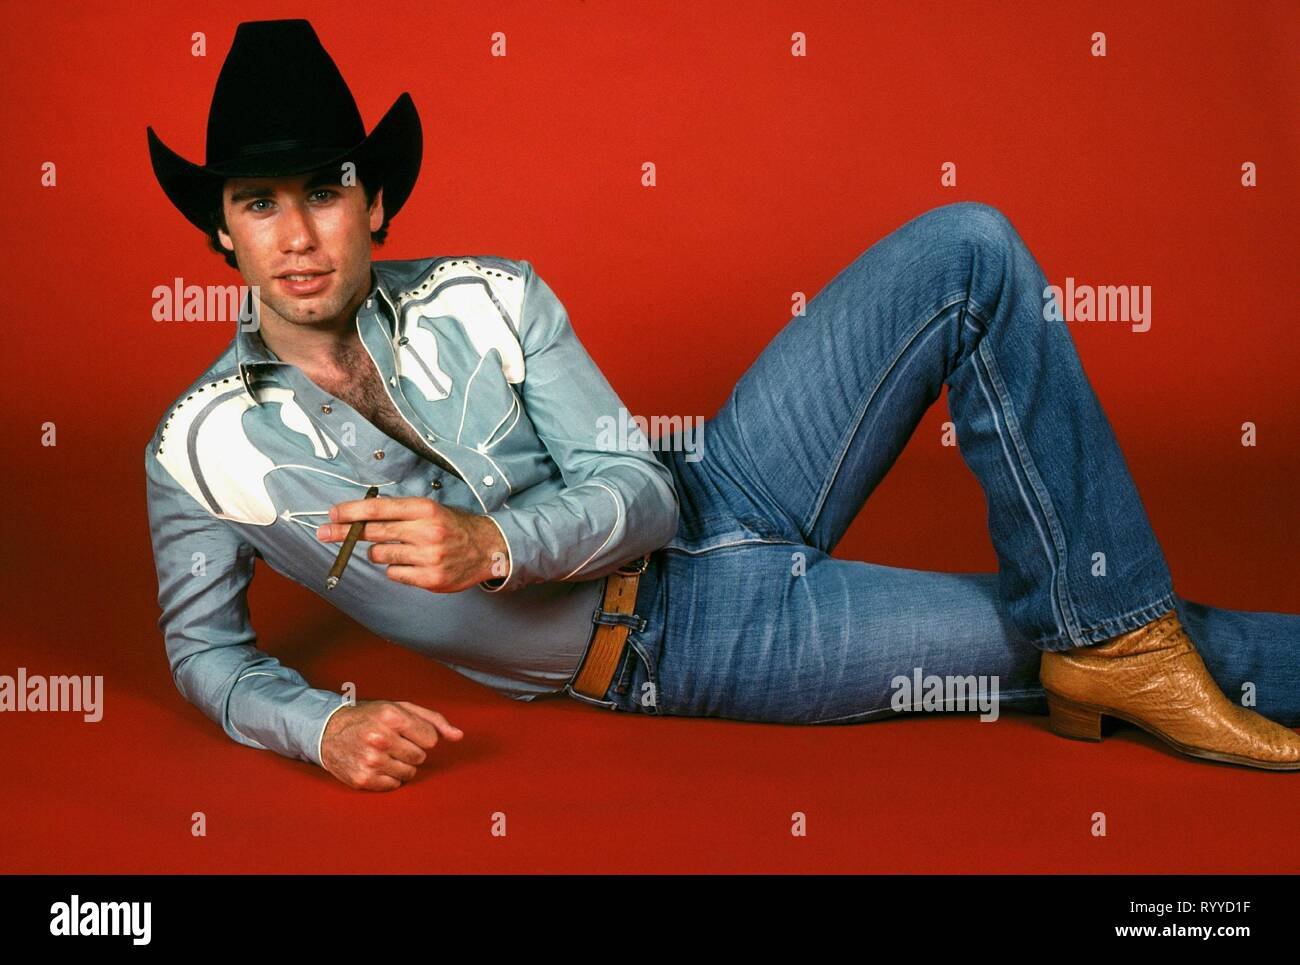 JOHN TRAVOLTA, URBAN COWBOY, 1980 Stock Photo